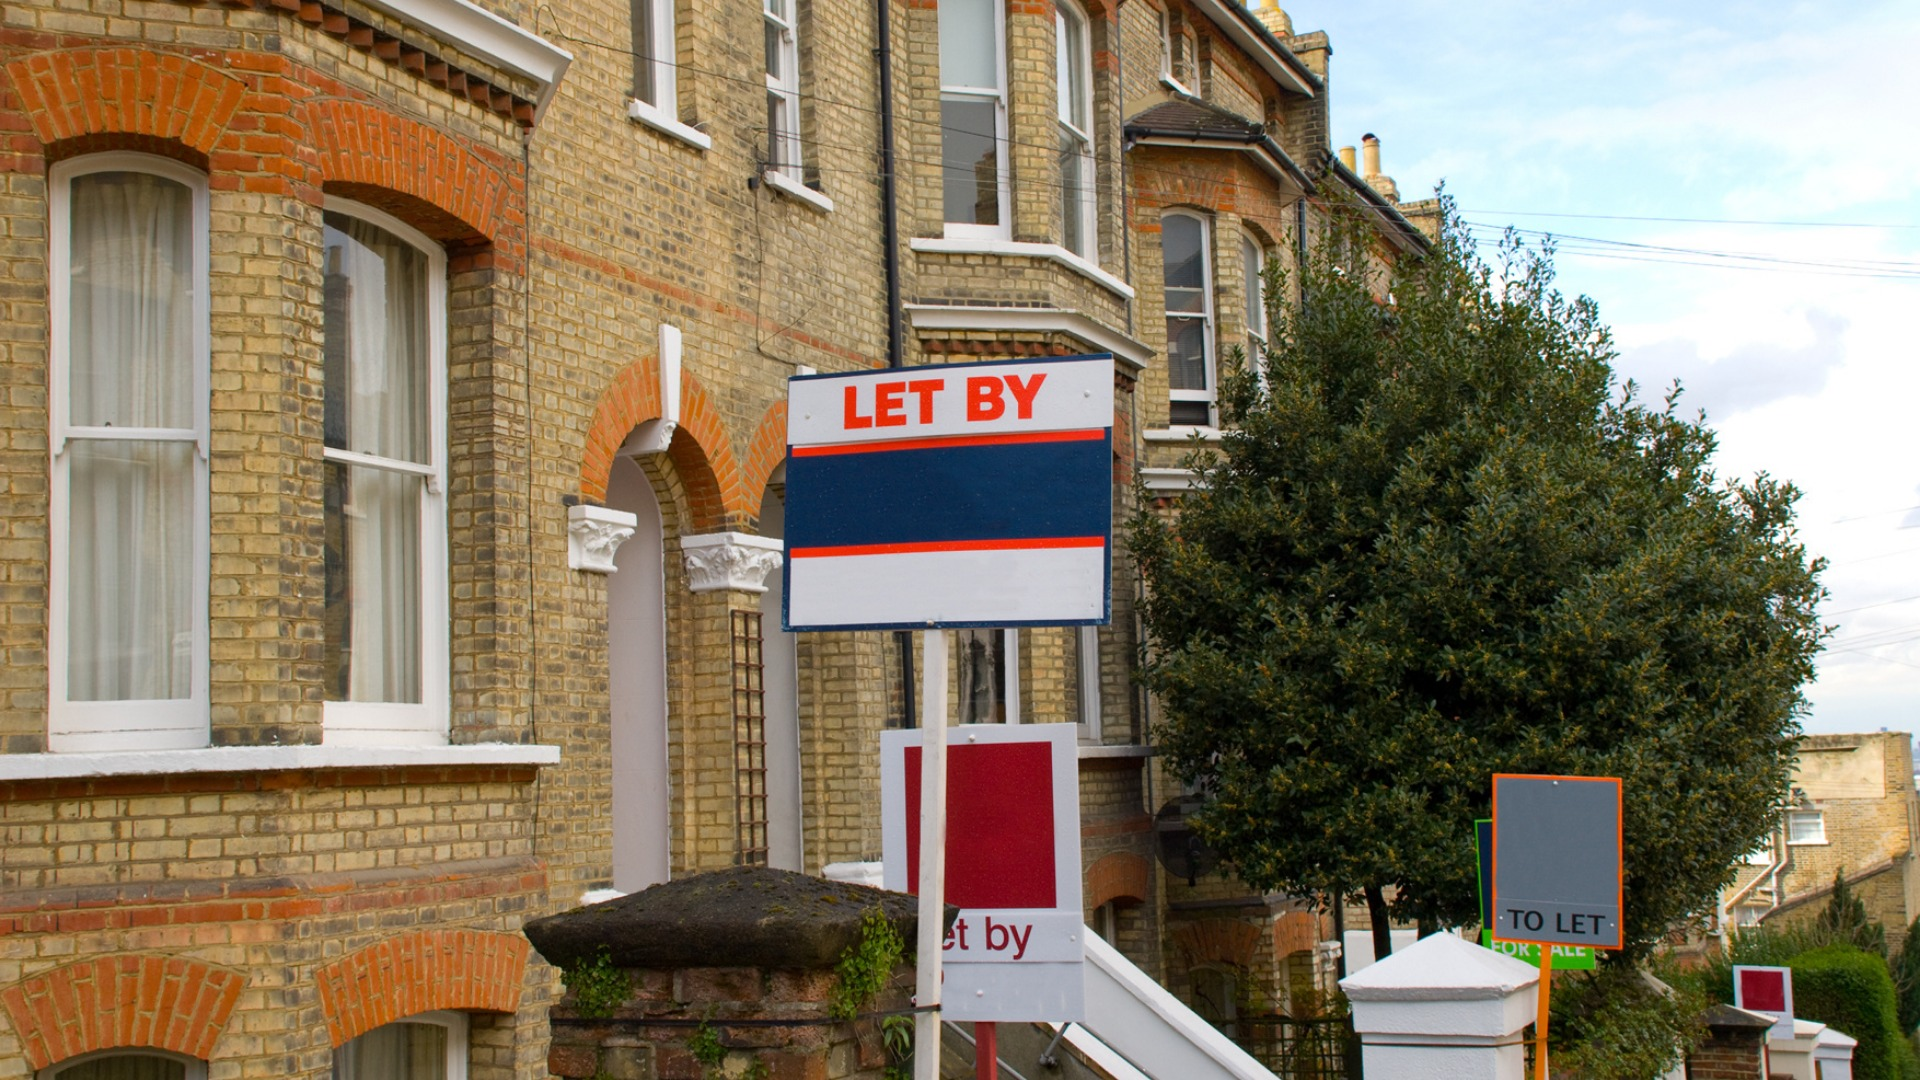 Lettings Market Records Its Strongest Month